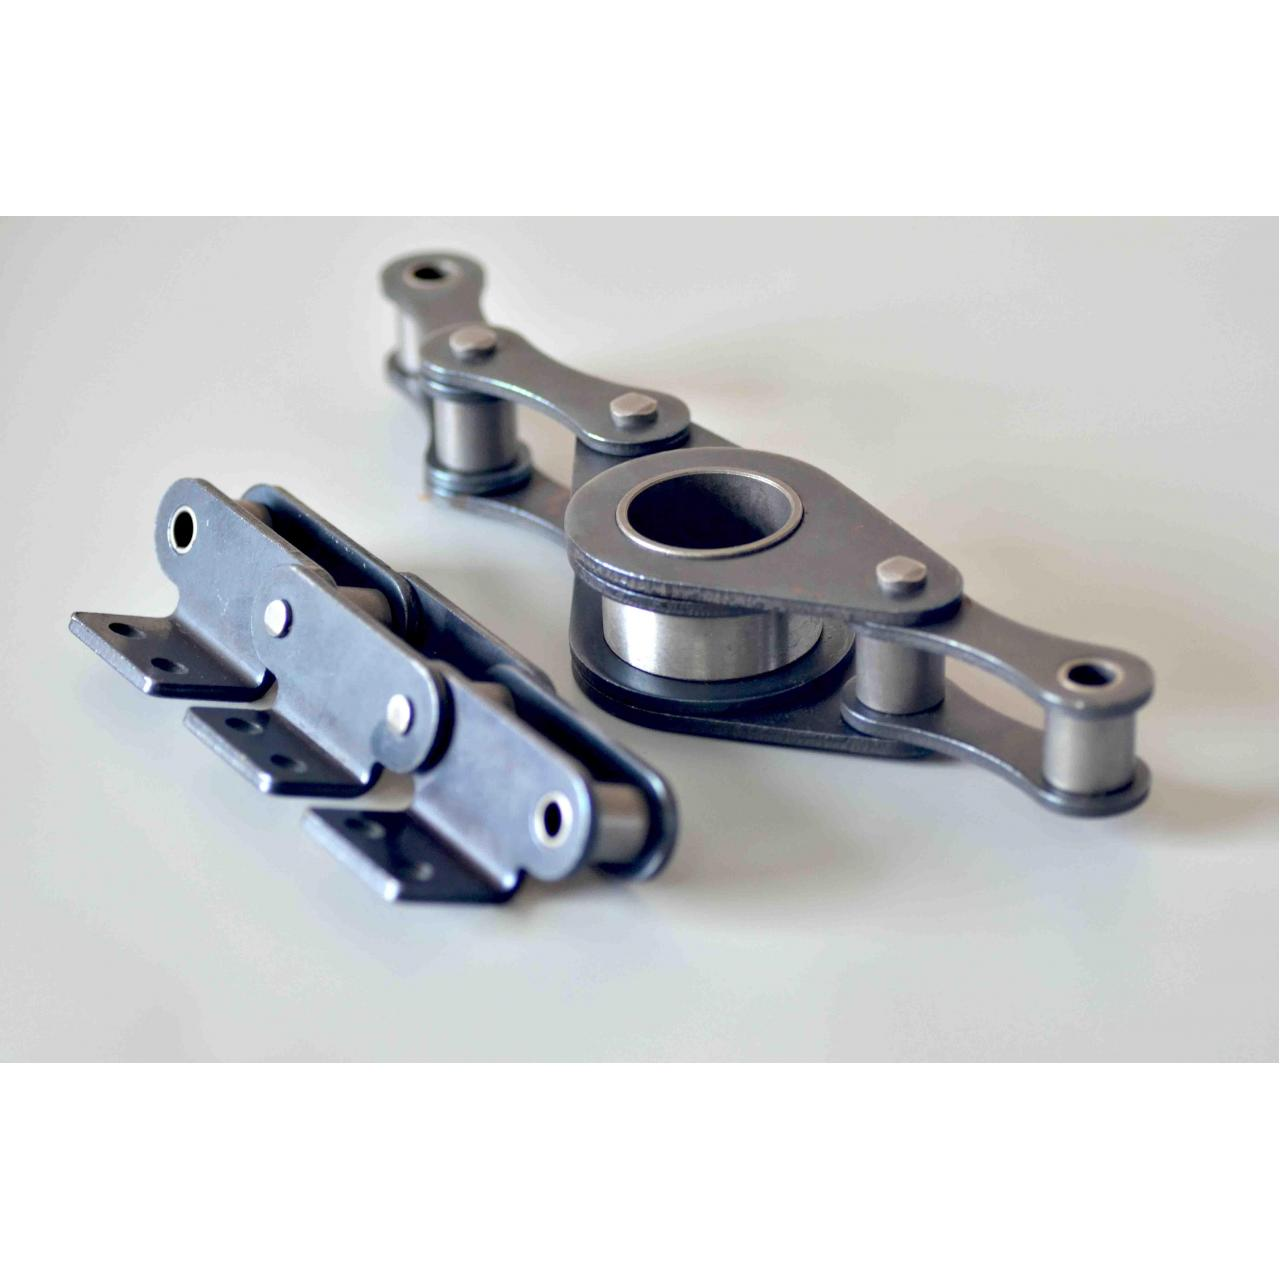 Agricultural chains for in corn, wheat, rice harvester and sealing agricultural machines